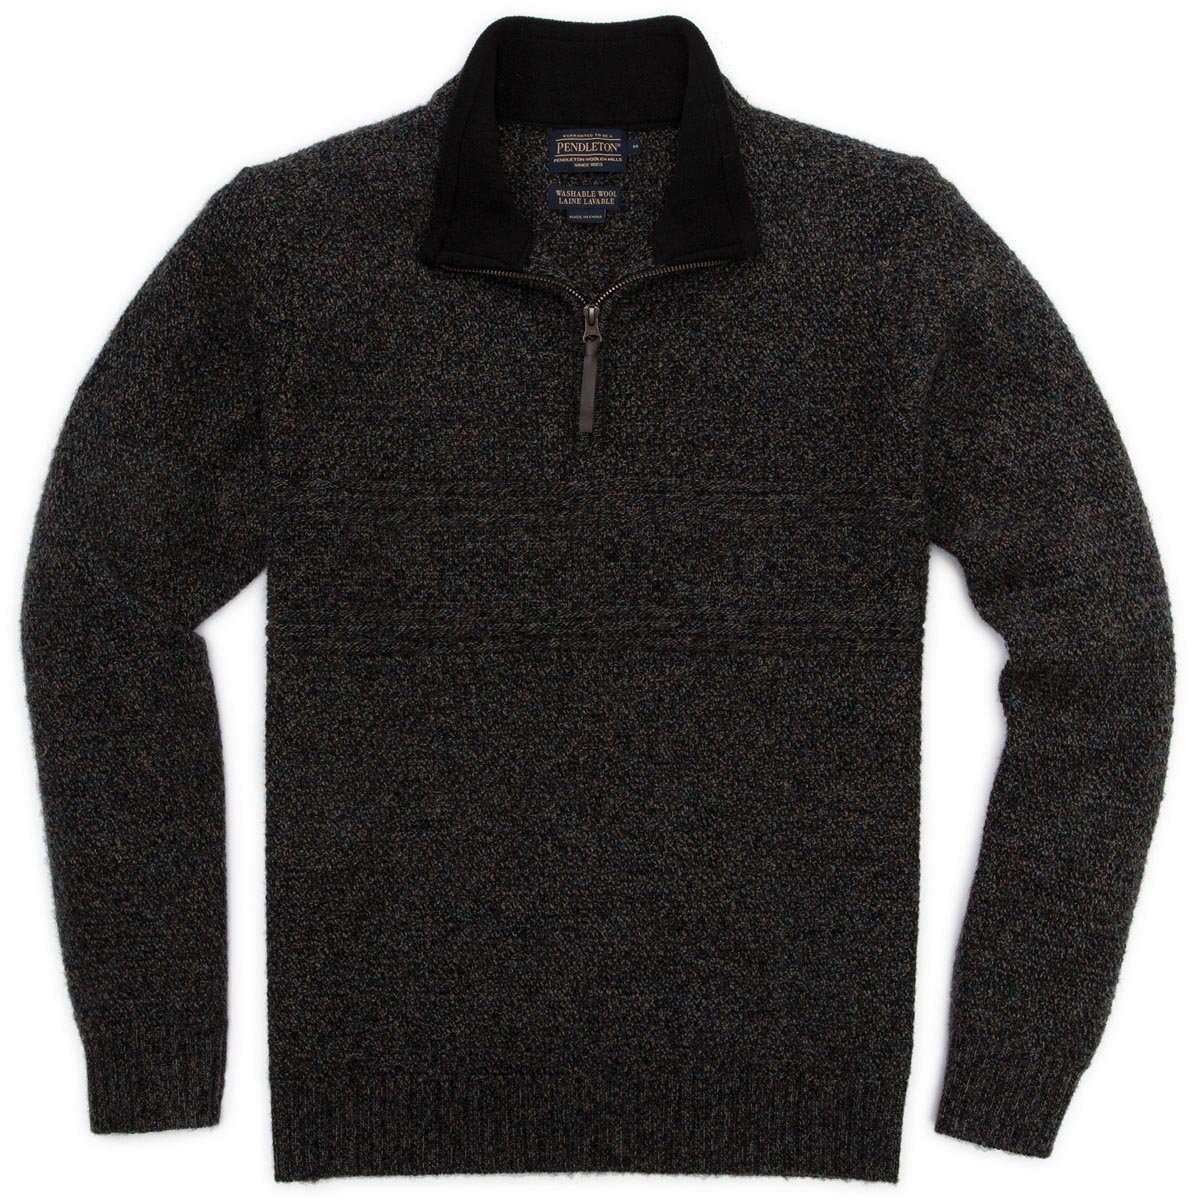 Pendleton Men's Shetland Half Zip Sweater discontinued